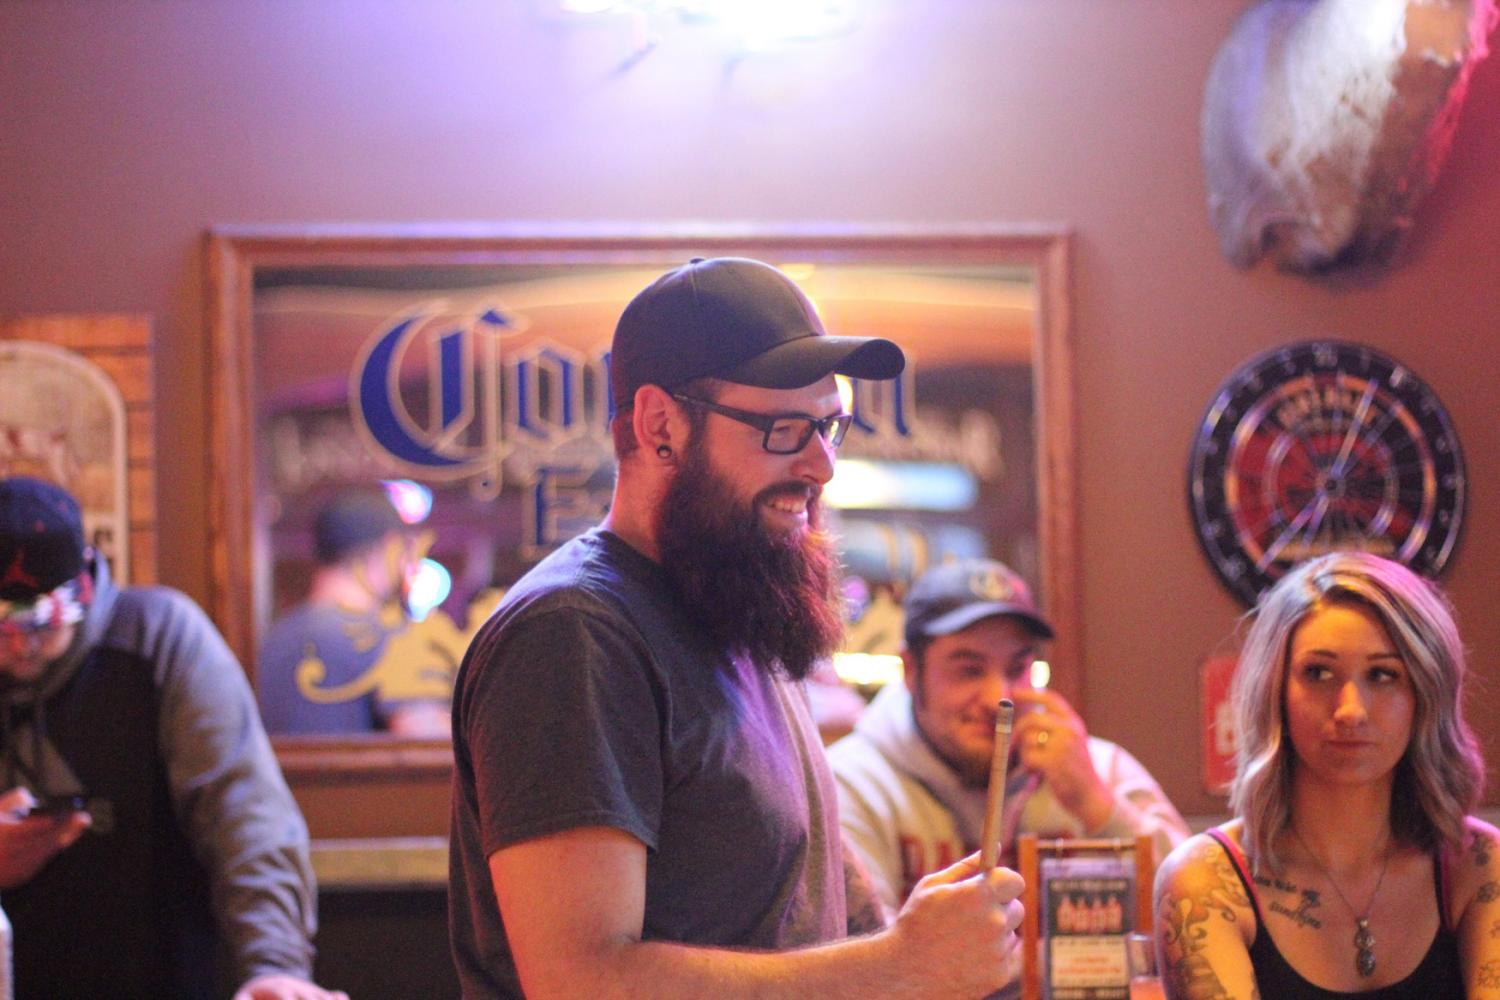 Mike Carson smiling with his friends while playing pool at Wild Bill's Longbar